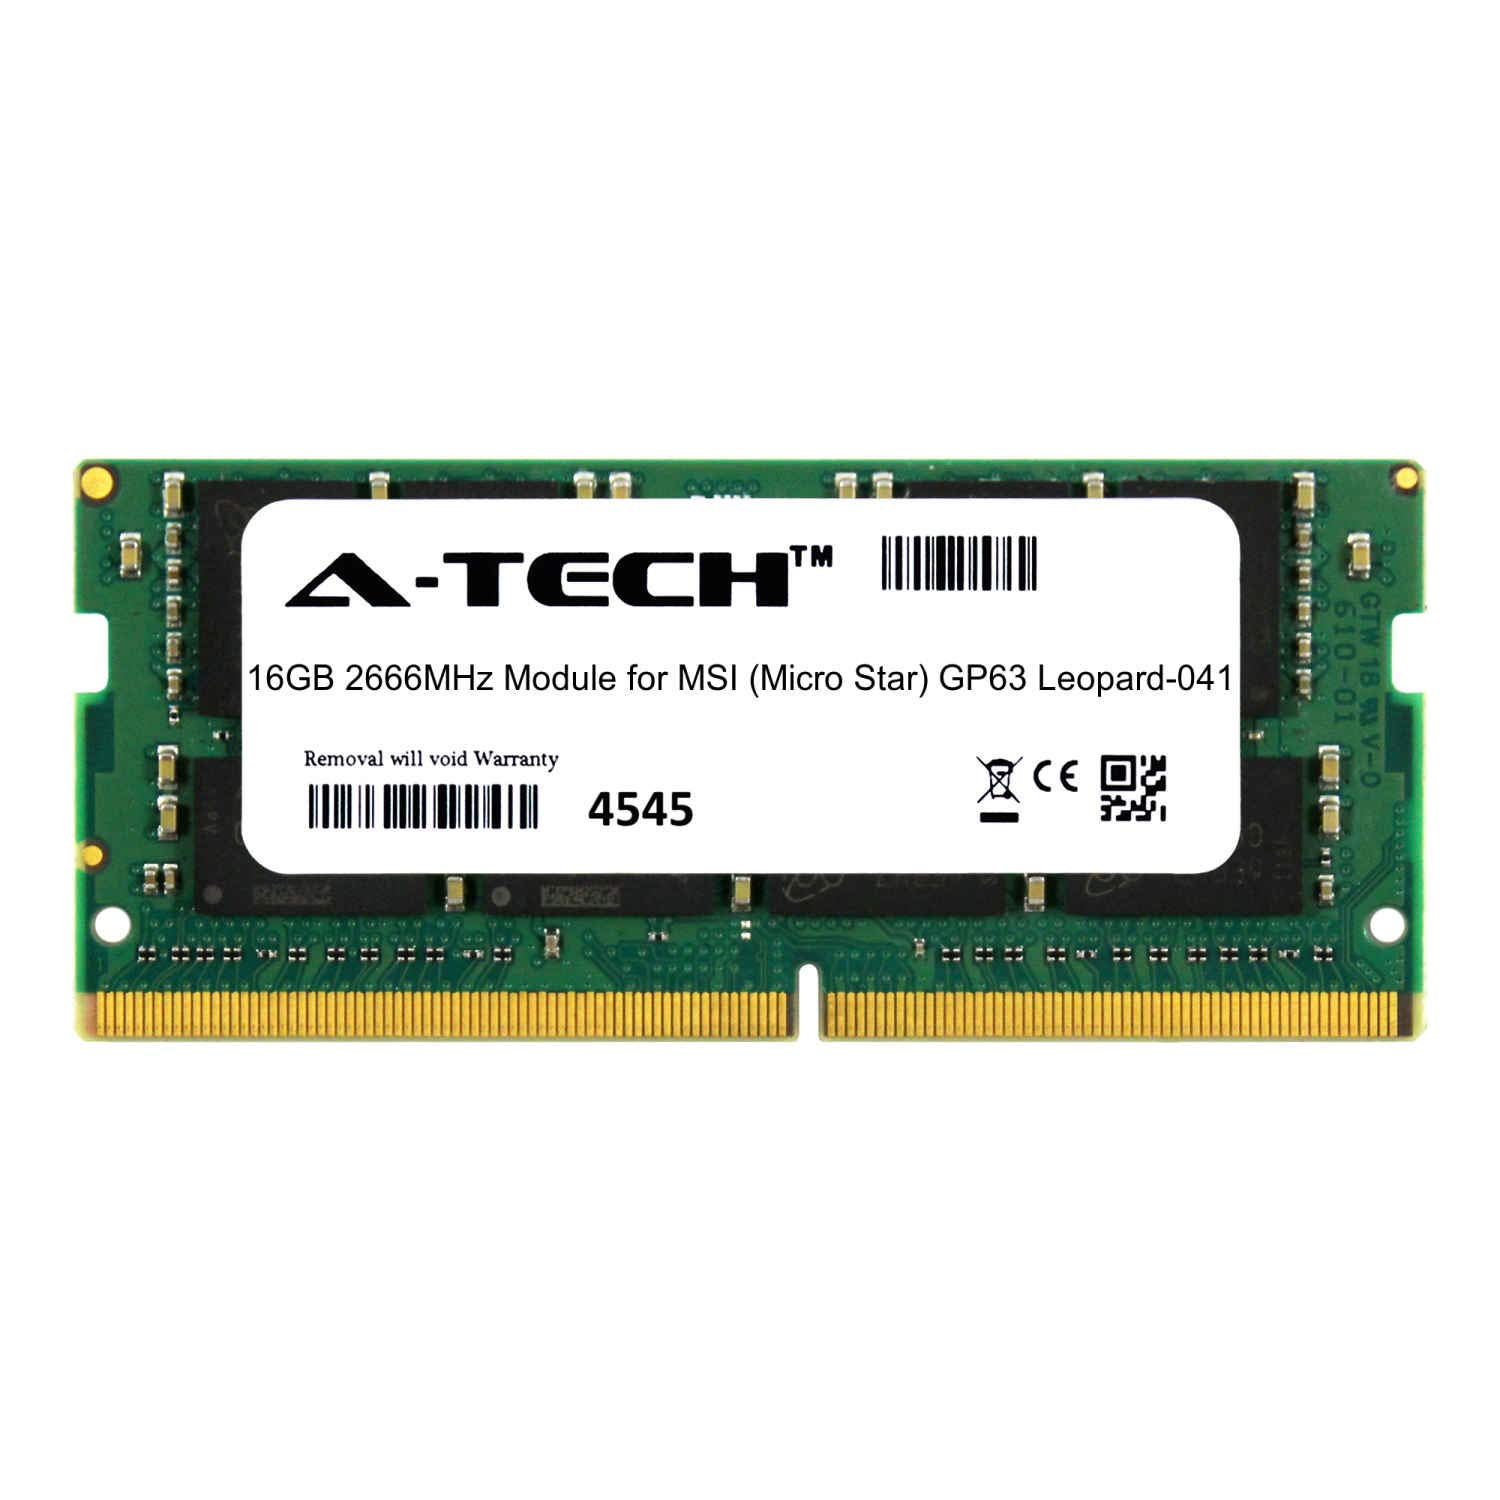 A-Tech 16GB Module for MSI (Micro Star) GP63 Leopard-041 Laptop & Notebook Compatible DDR4 2666Mhz Memory Ram (ATMS368114A25832X1)